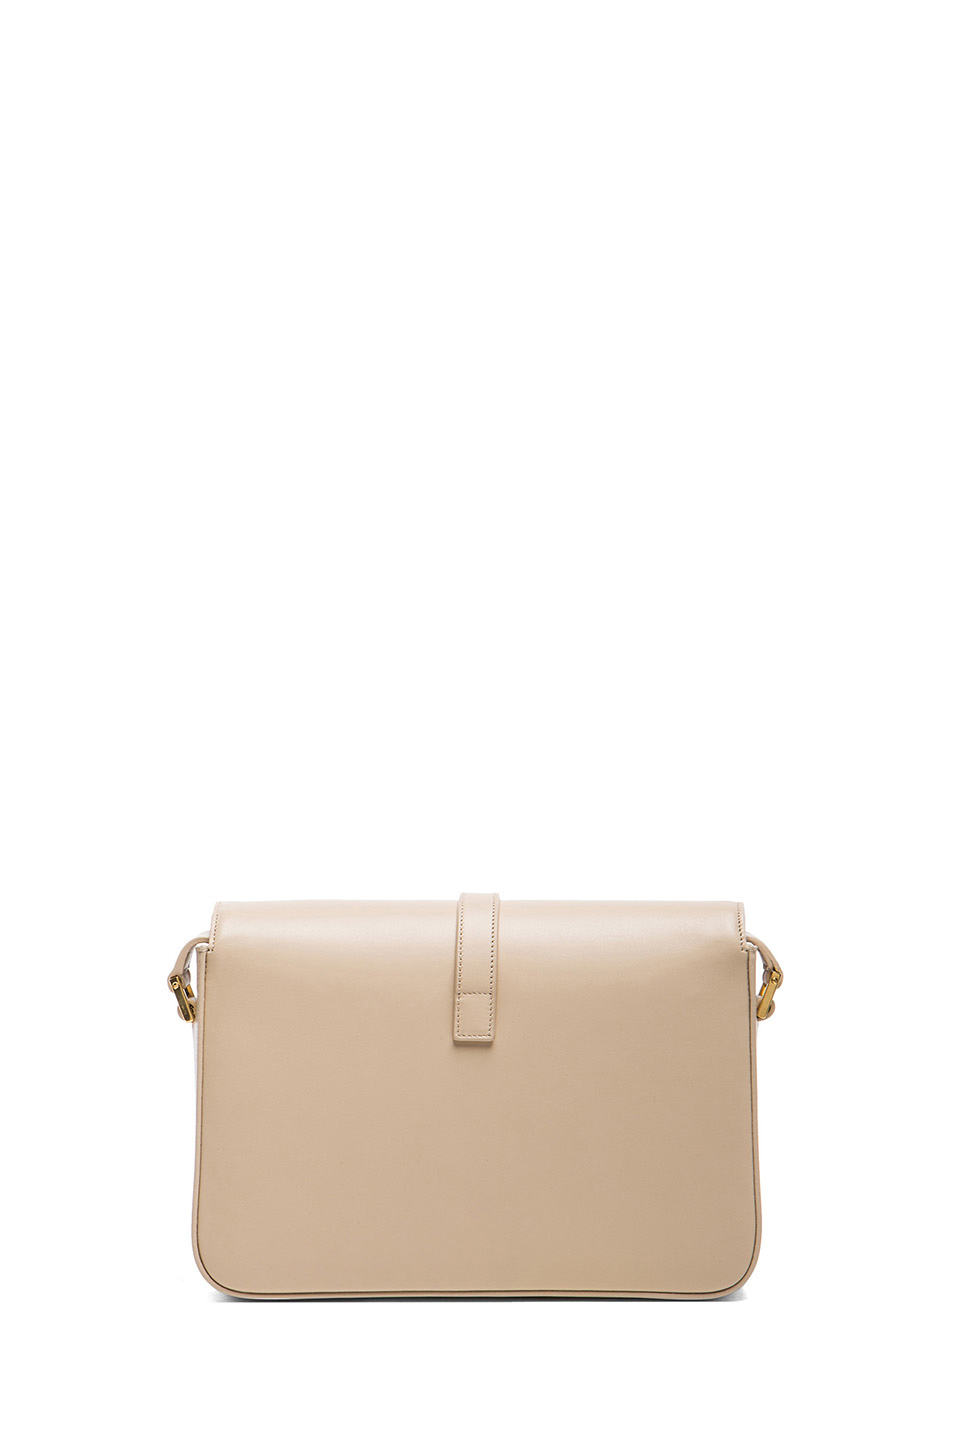 Saint Laurent | Monogramme Universite Bag in Powder